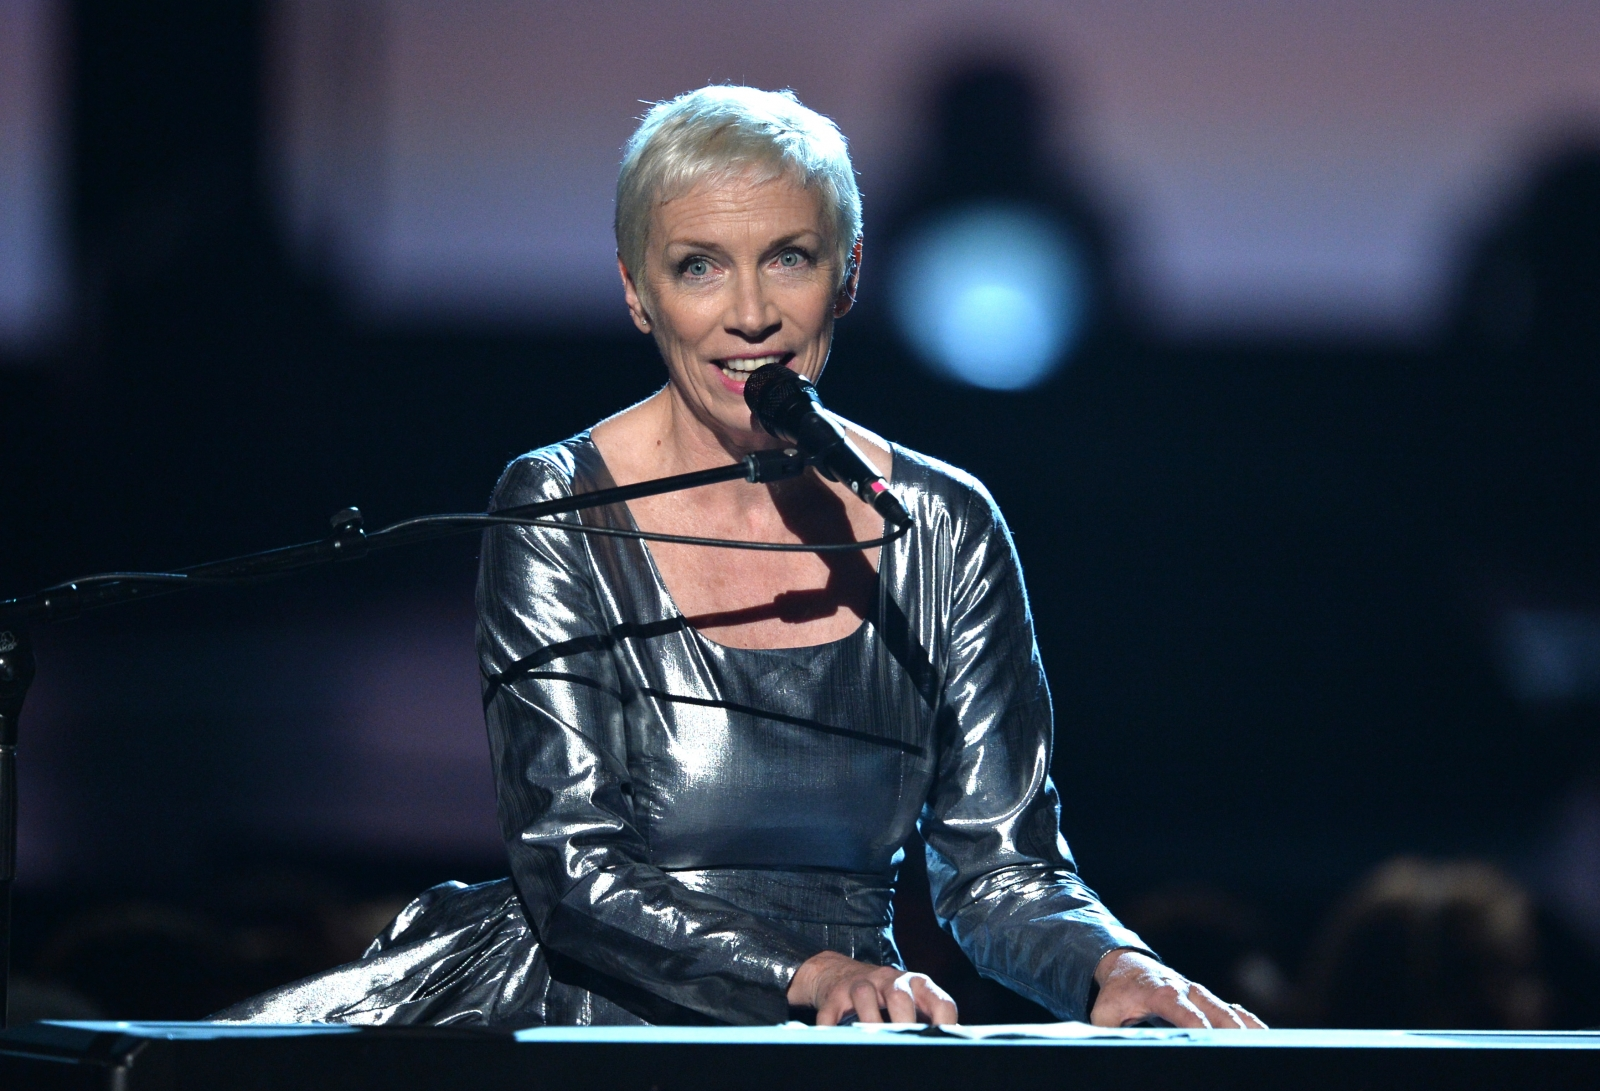 Did Annie Lennox Just Uncover a Scam Aimed at Unsigned Artists?